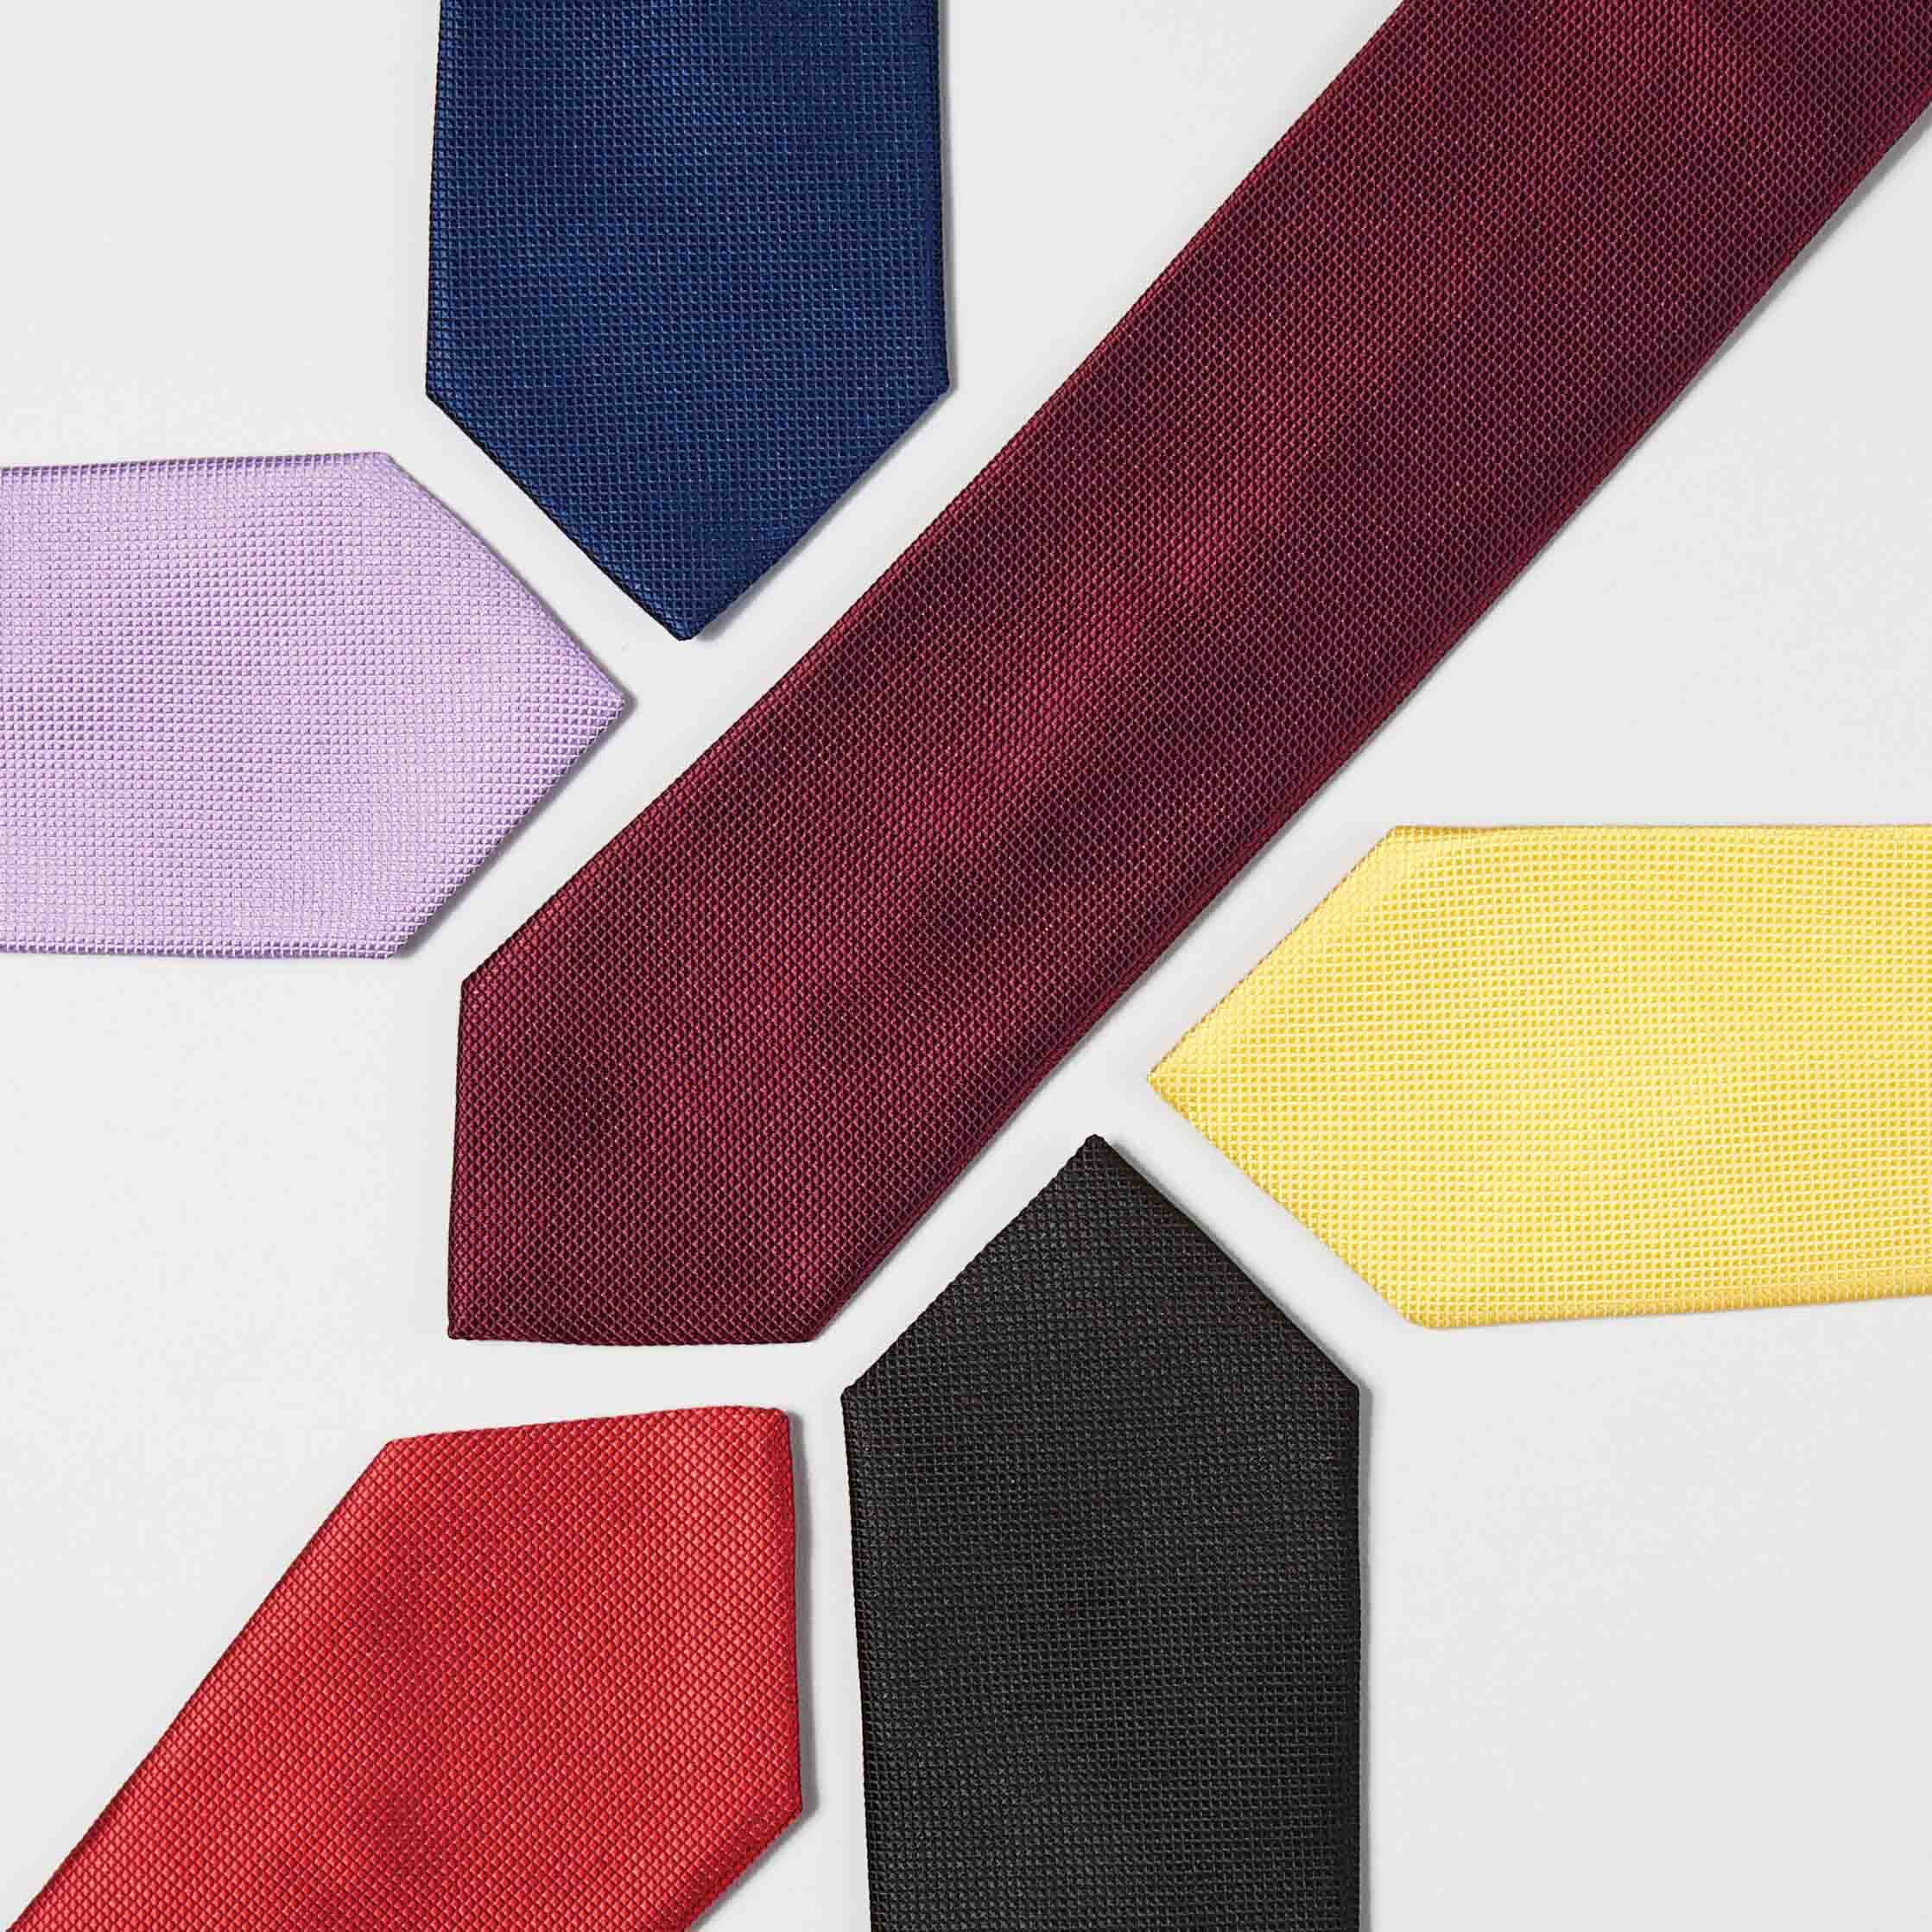 The Evolution of Ties